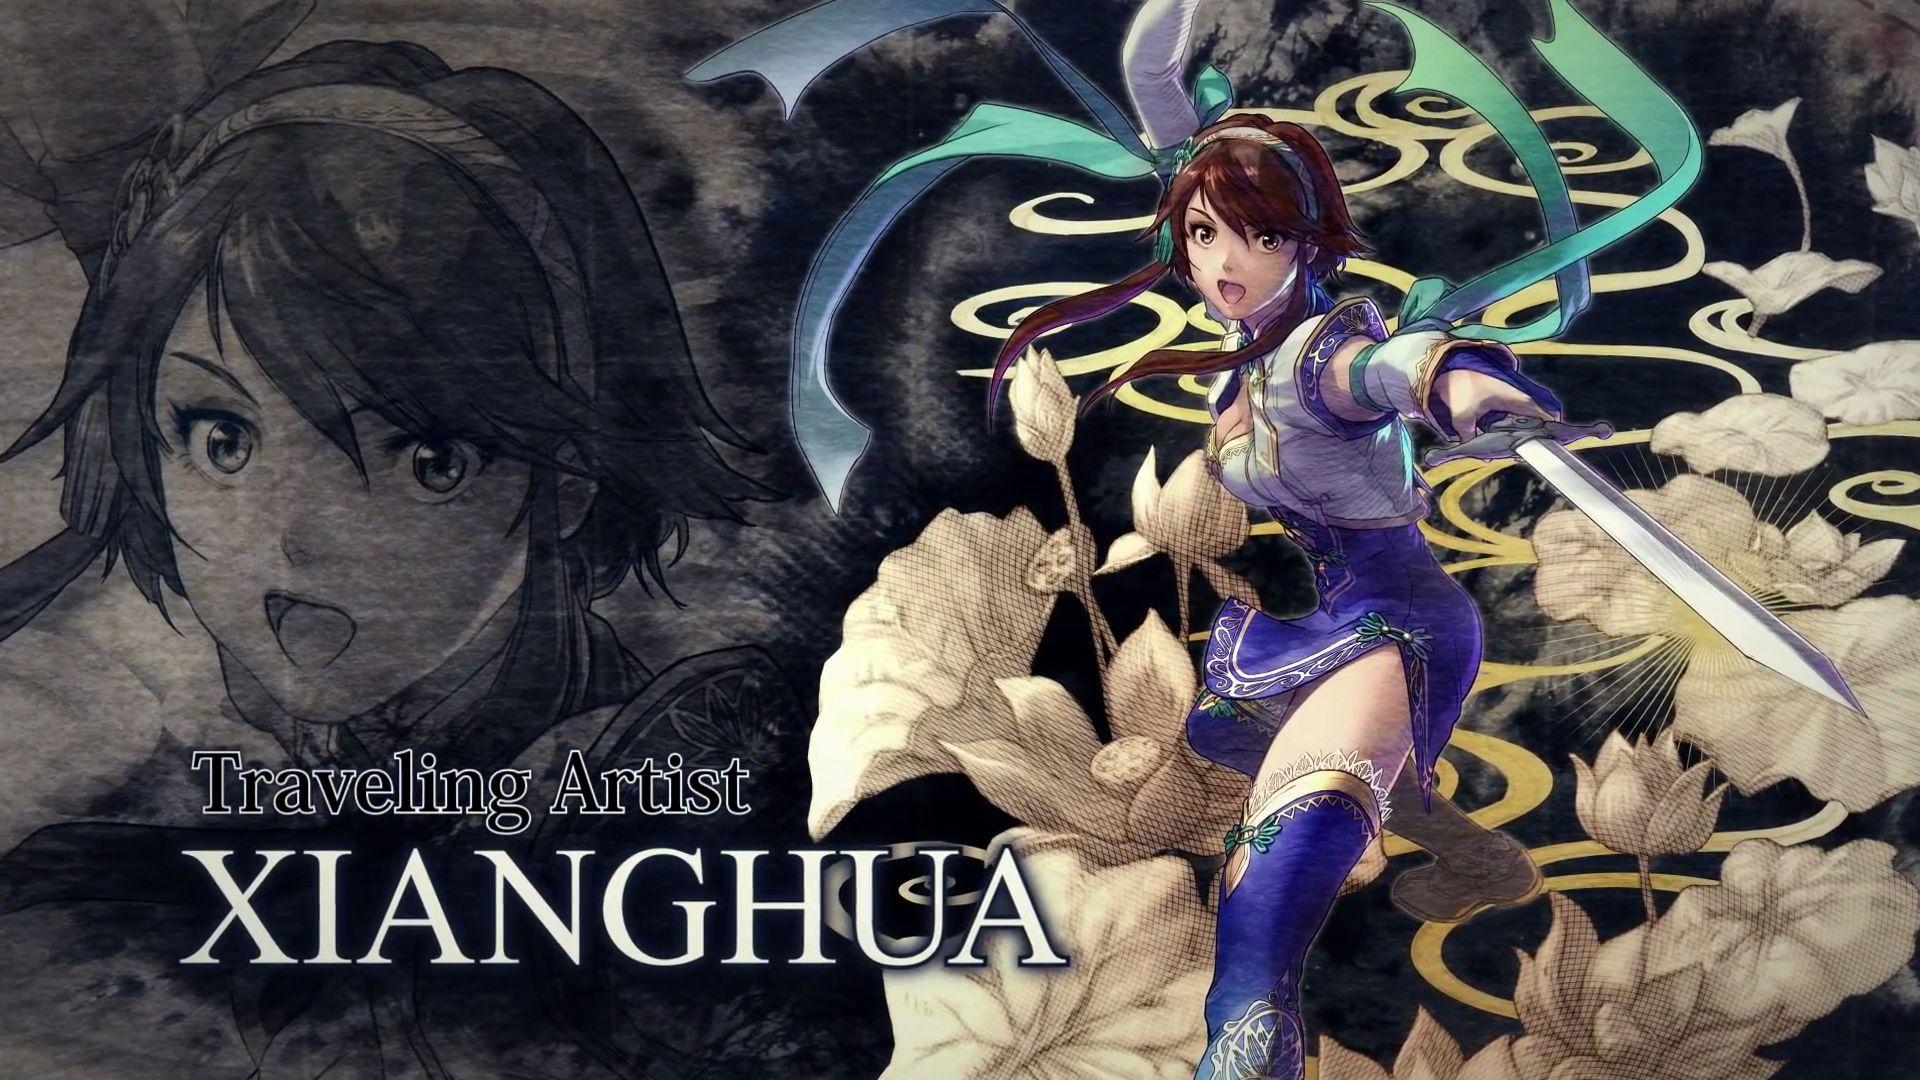 Xianghua. Wallpapers from Soulcalibur VI